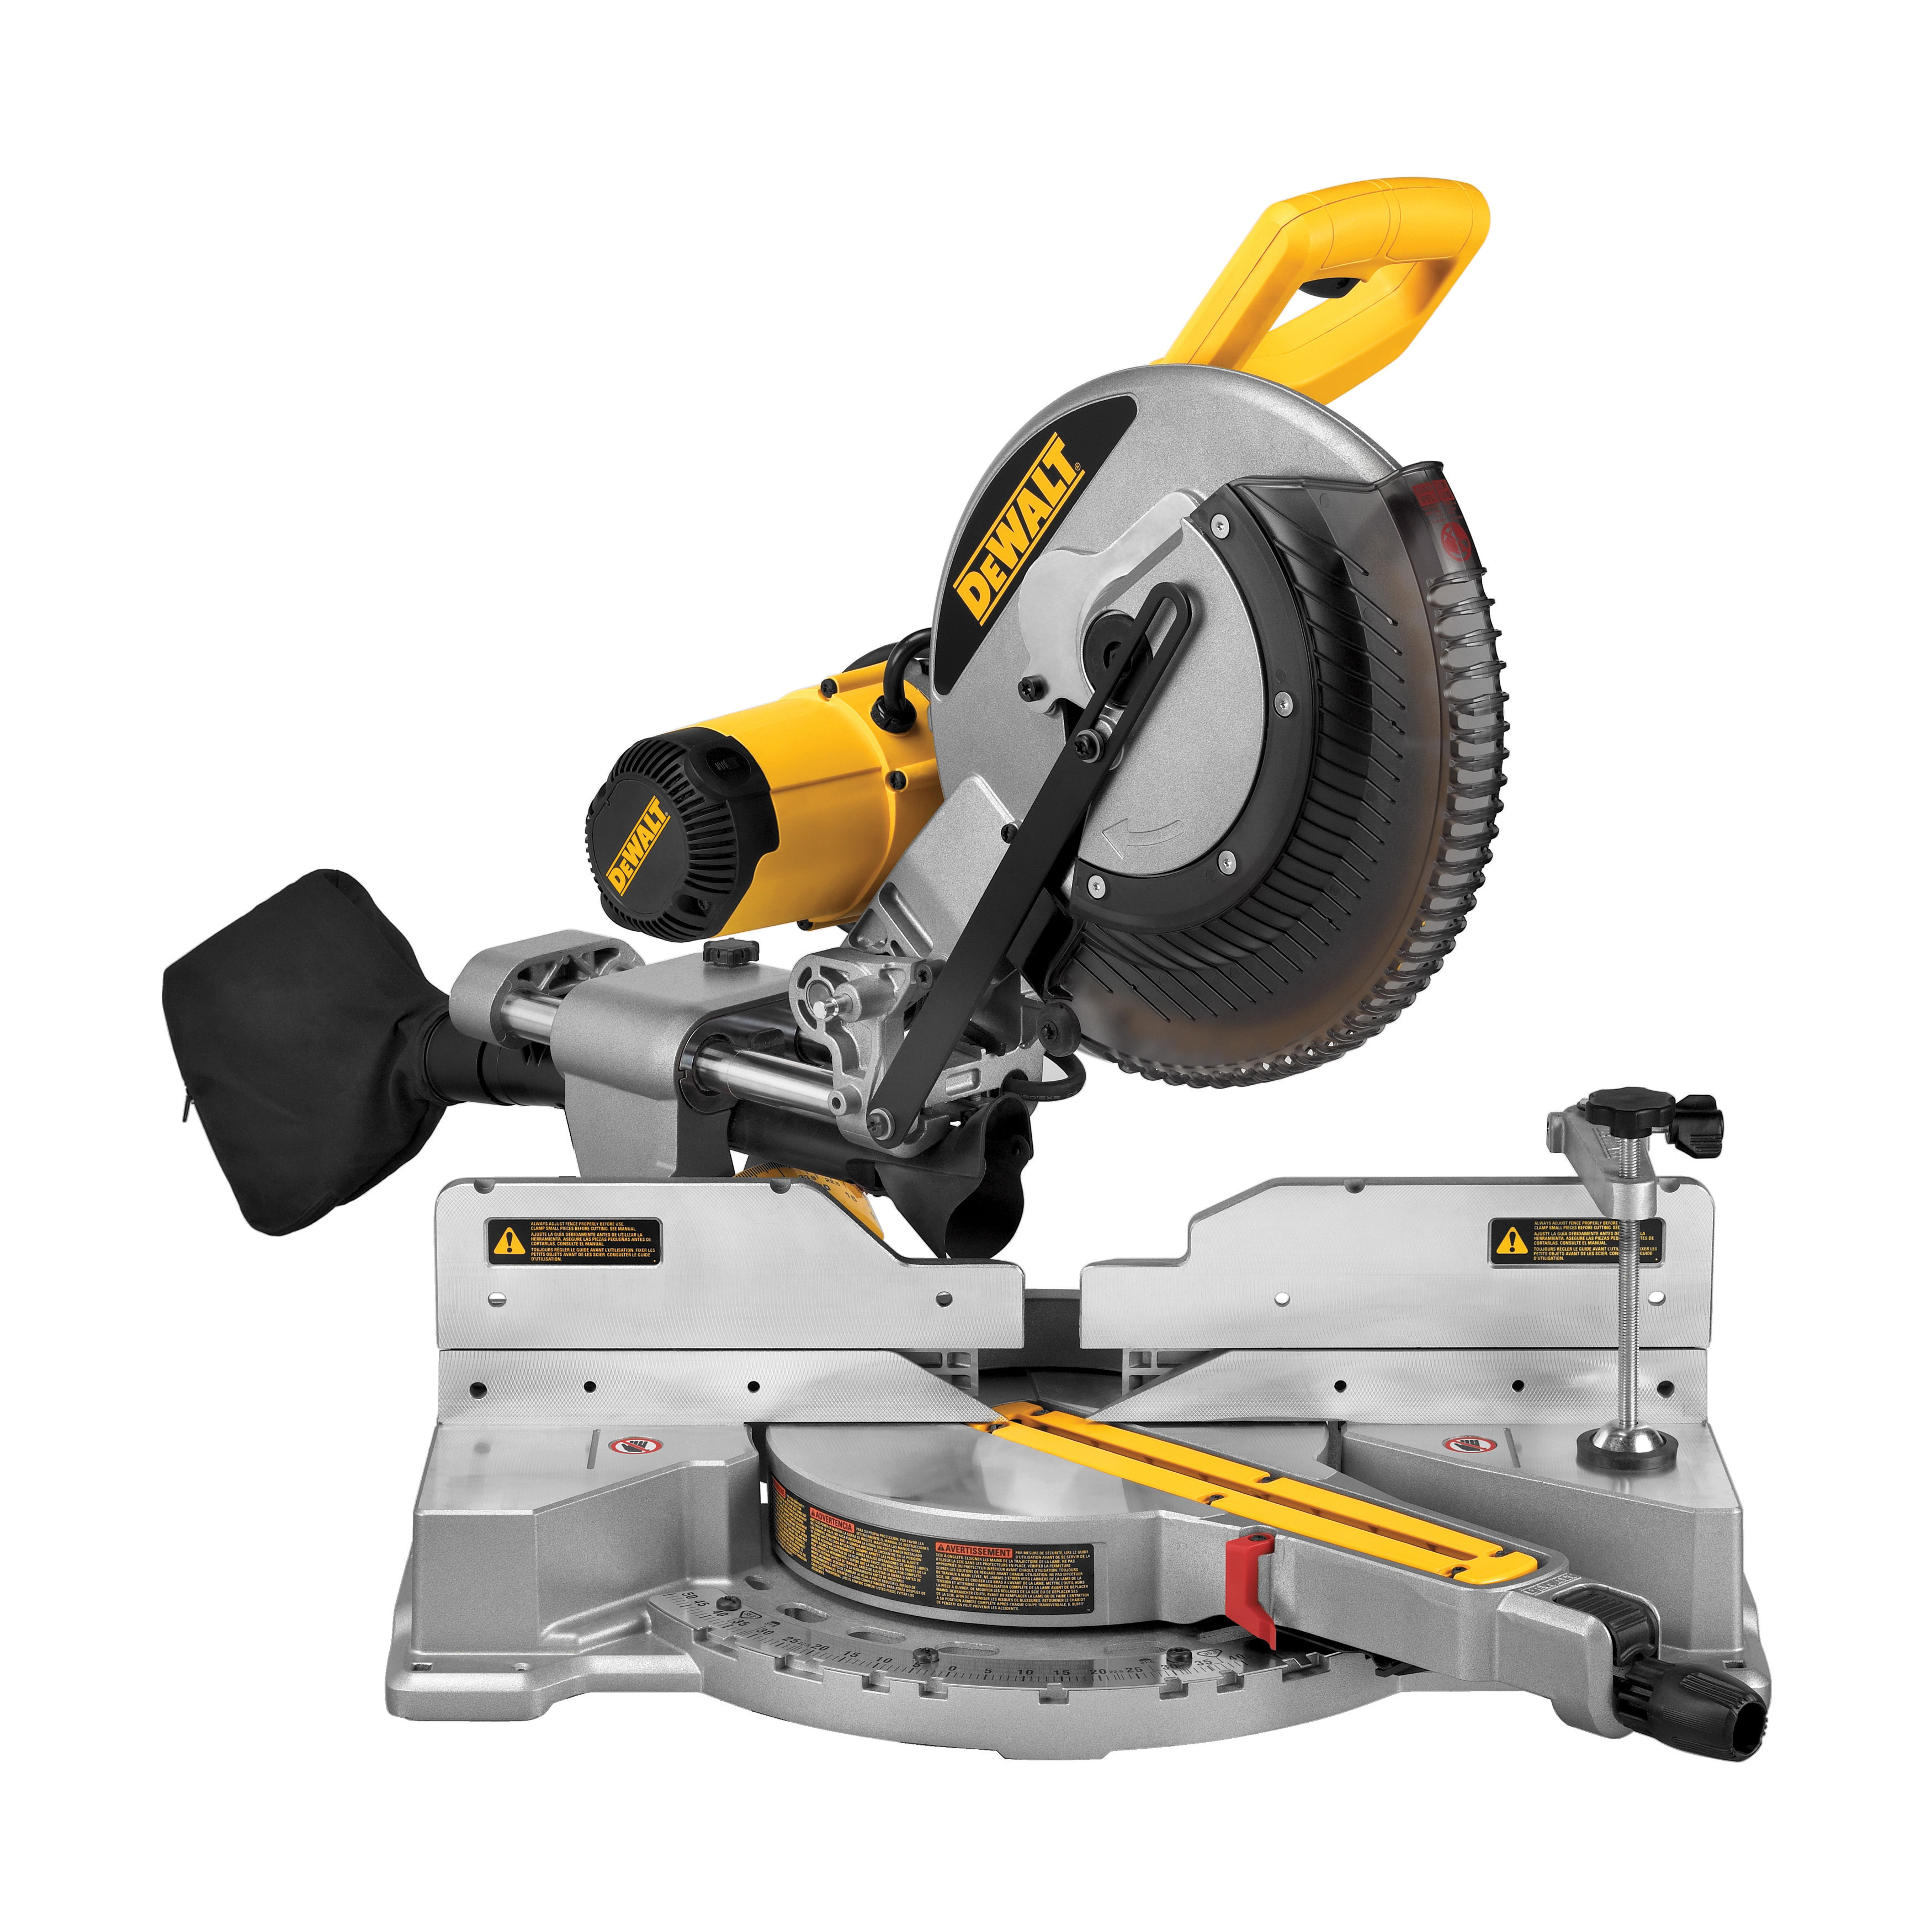 DeWALT® DWS709 Double Bevel Sliding Compound Miter Saw Kit, 12 in Dia Blade, 5/8 in, 1 in Arbor/Shank, 4-1/2 in Vertical, 5-1/2 in Vertically Nested and 9-1/2 in Horizontal Cutting, 60 deg Left/50 deg Right Miter, 2x10 in at 45 deg Bevel